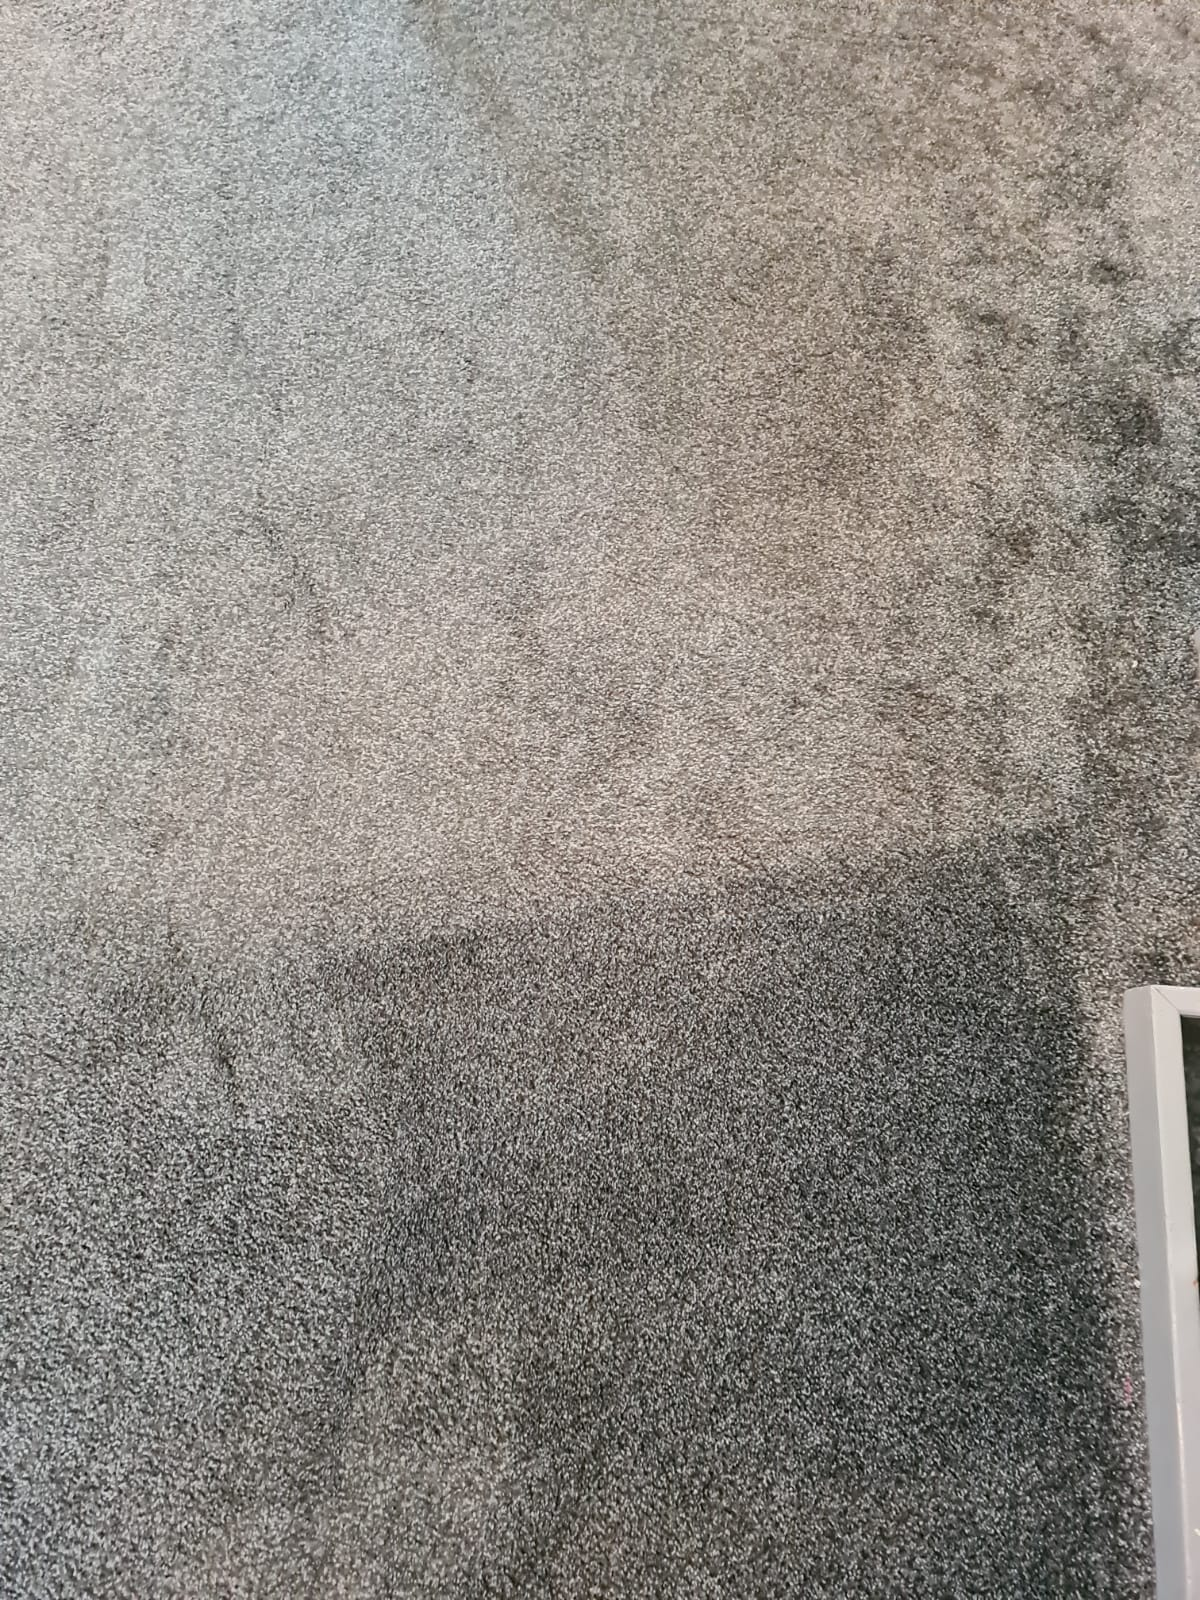 Carpet Cleaning Morley. PCC (2)